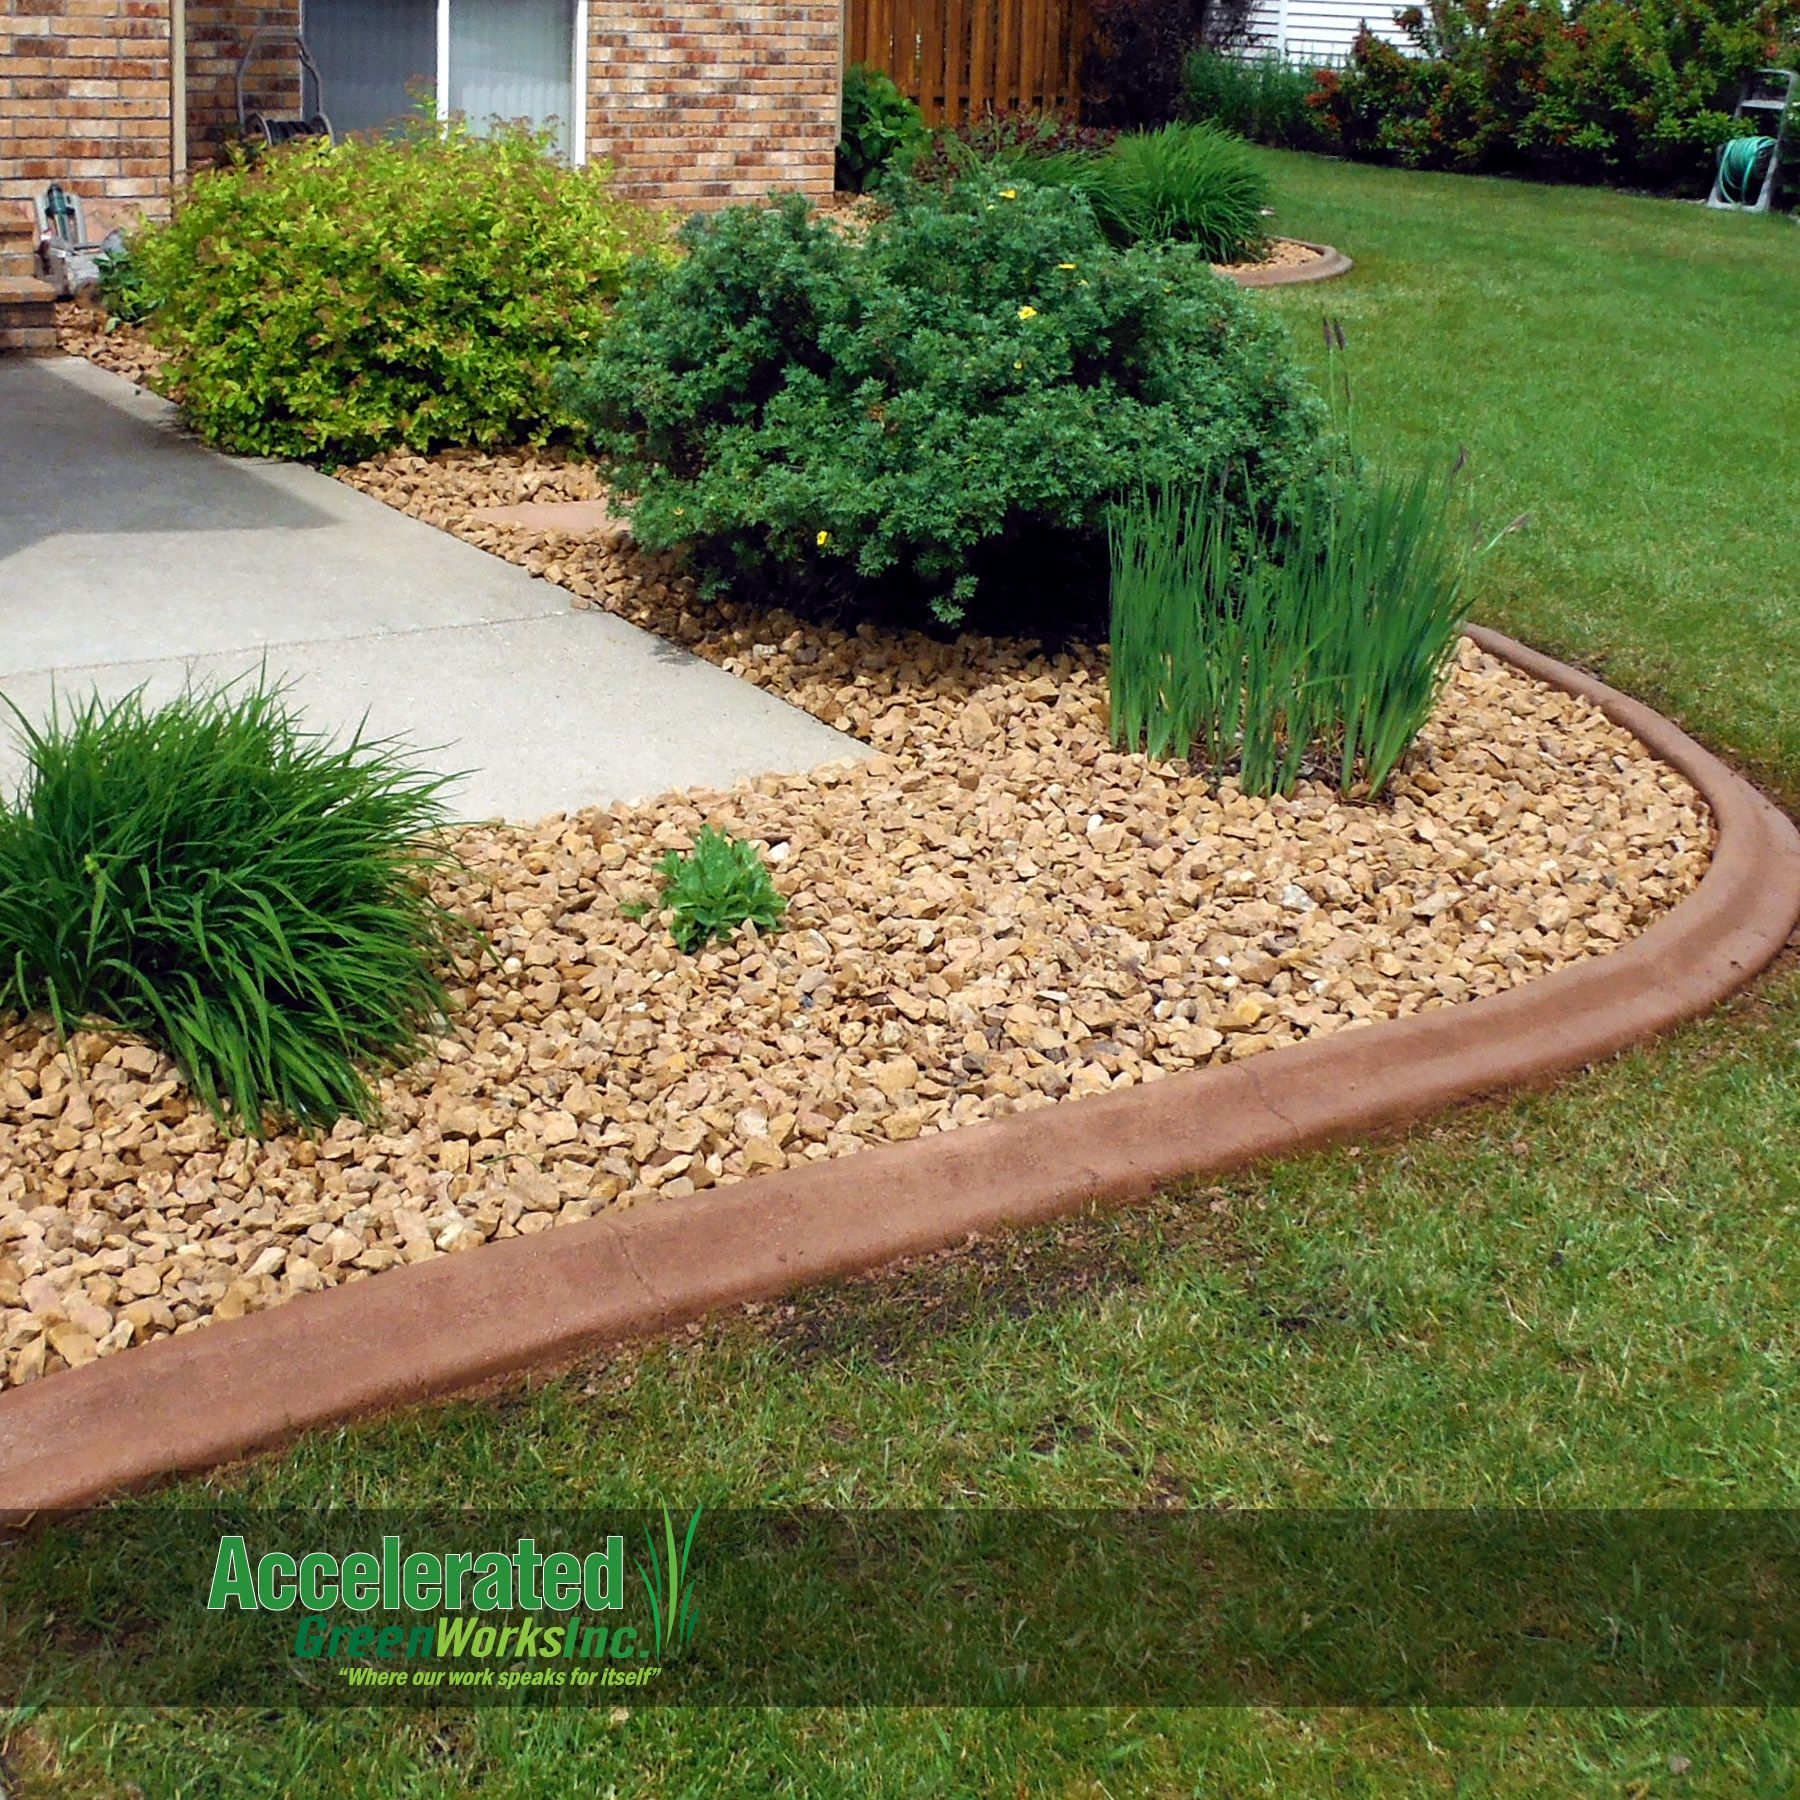 Colored Concrete Curb Edging Blends To Rock Bed While Providing A Nice Contrast With Lawn